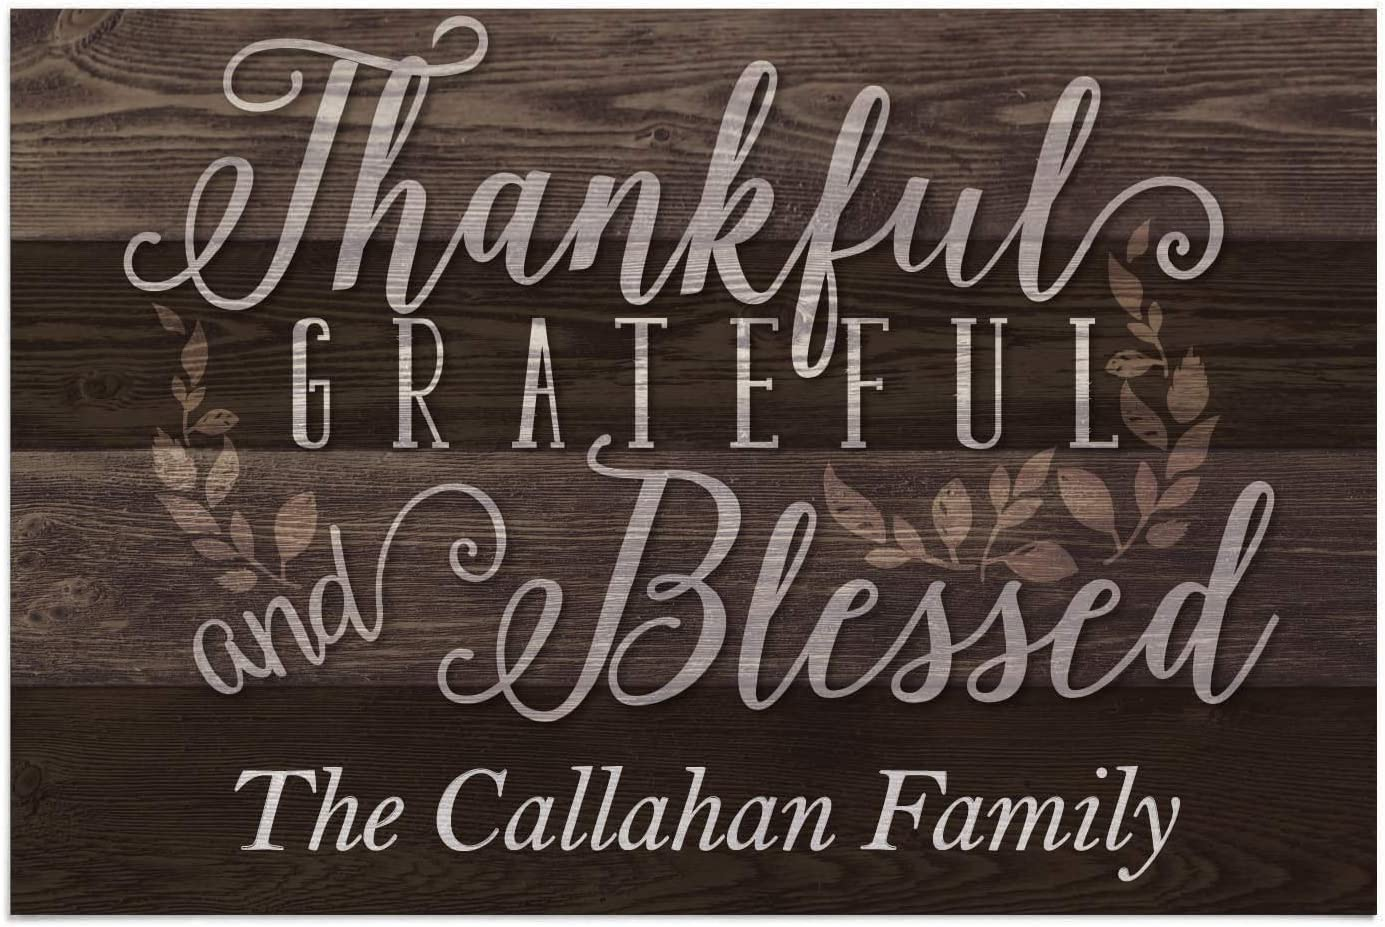 Thankful Grateful and Blessed Personalized Doormat - Brown Custom Entry Door Mat with Name Printing on Durable 1/8